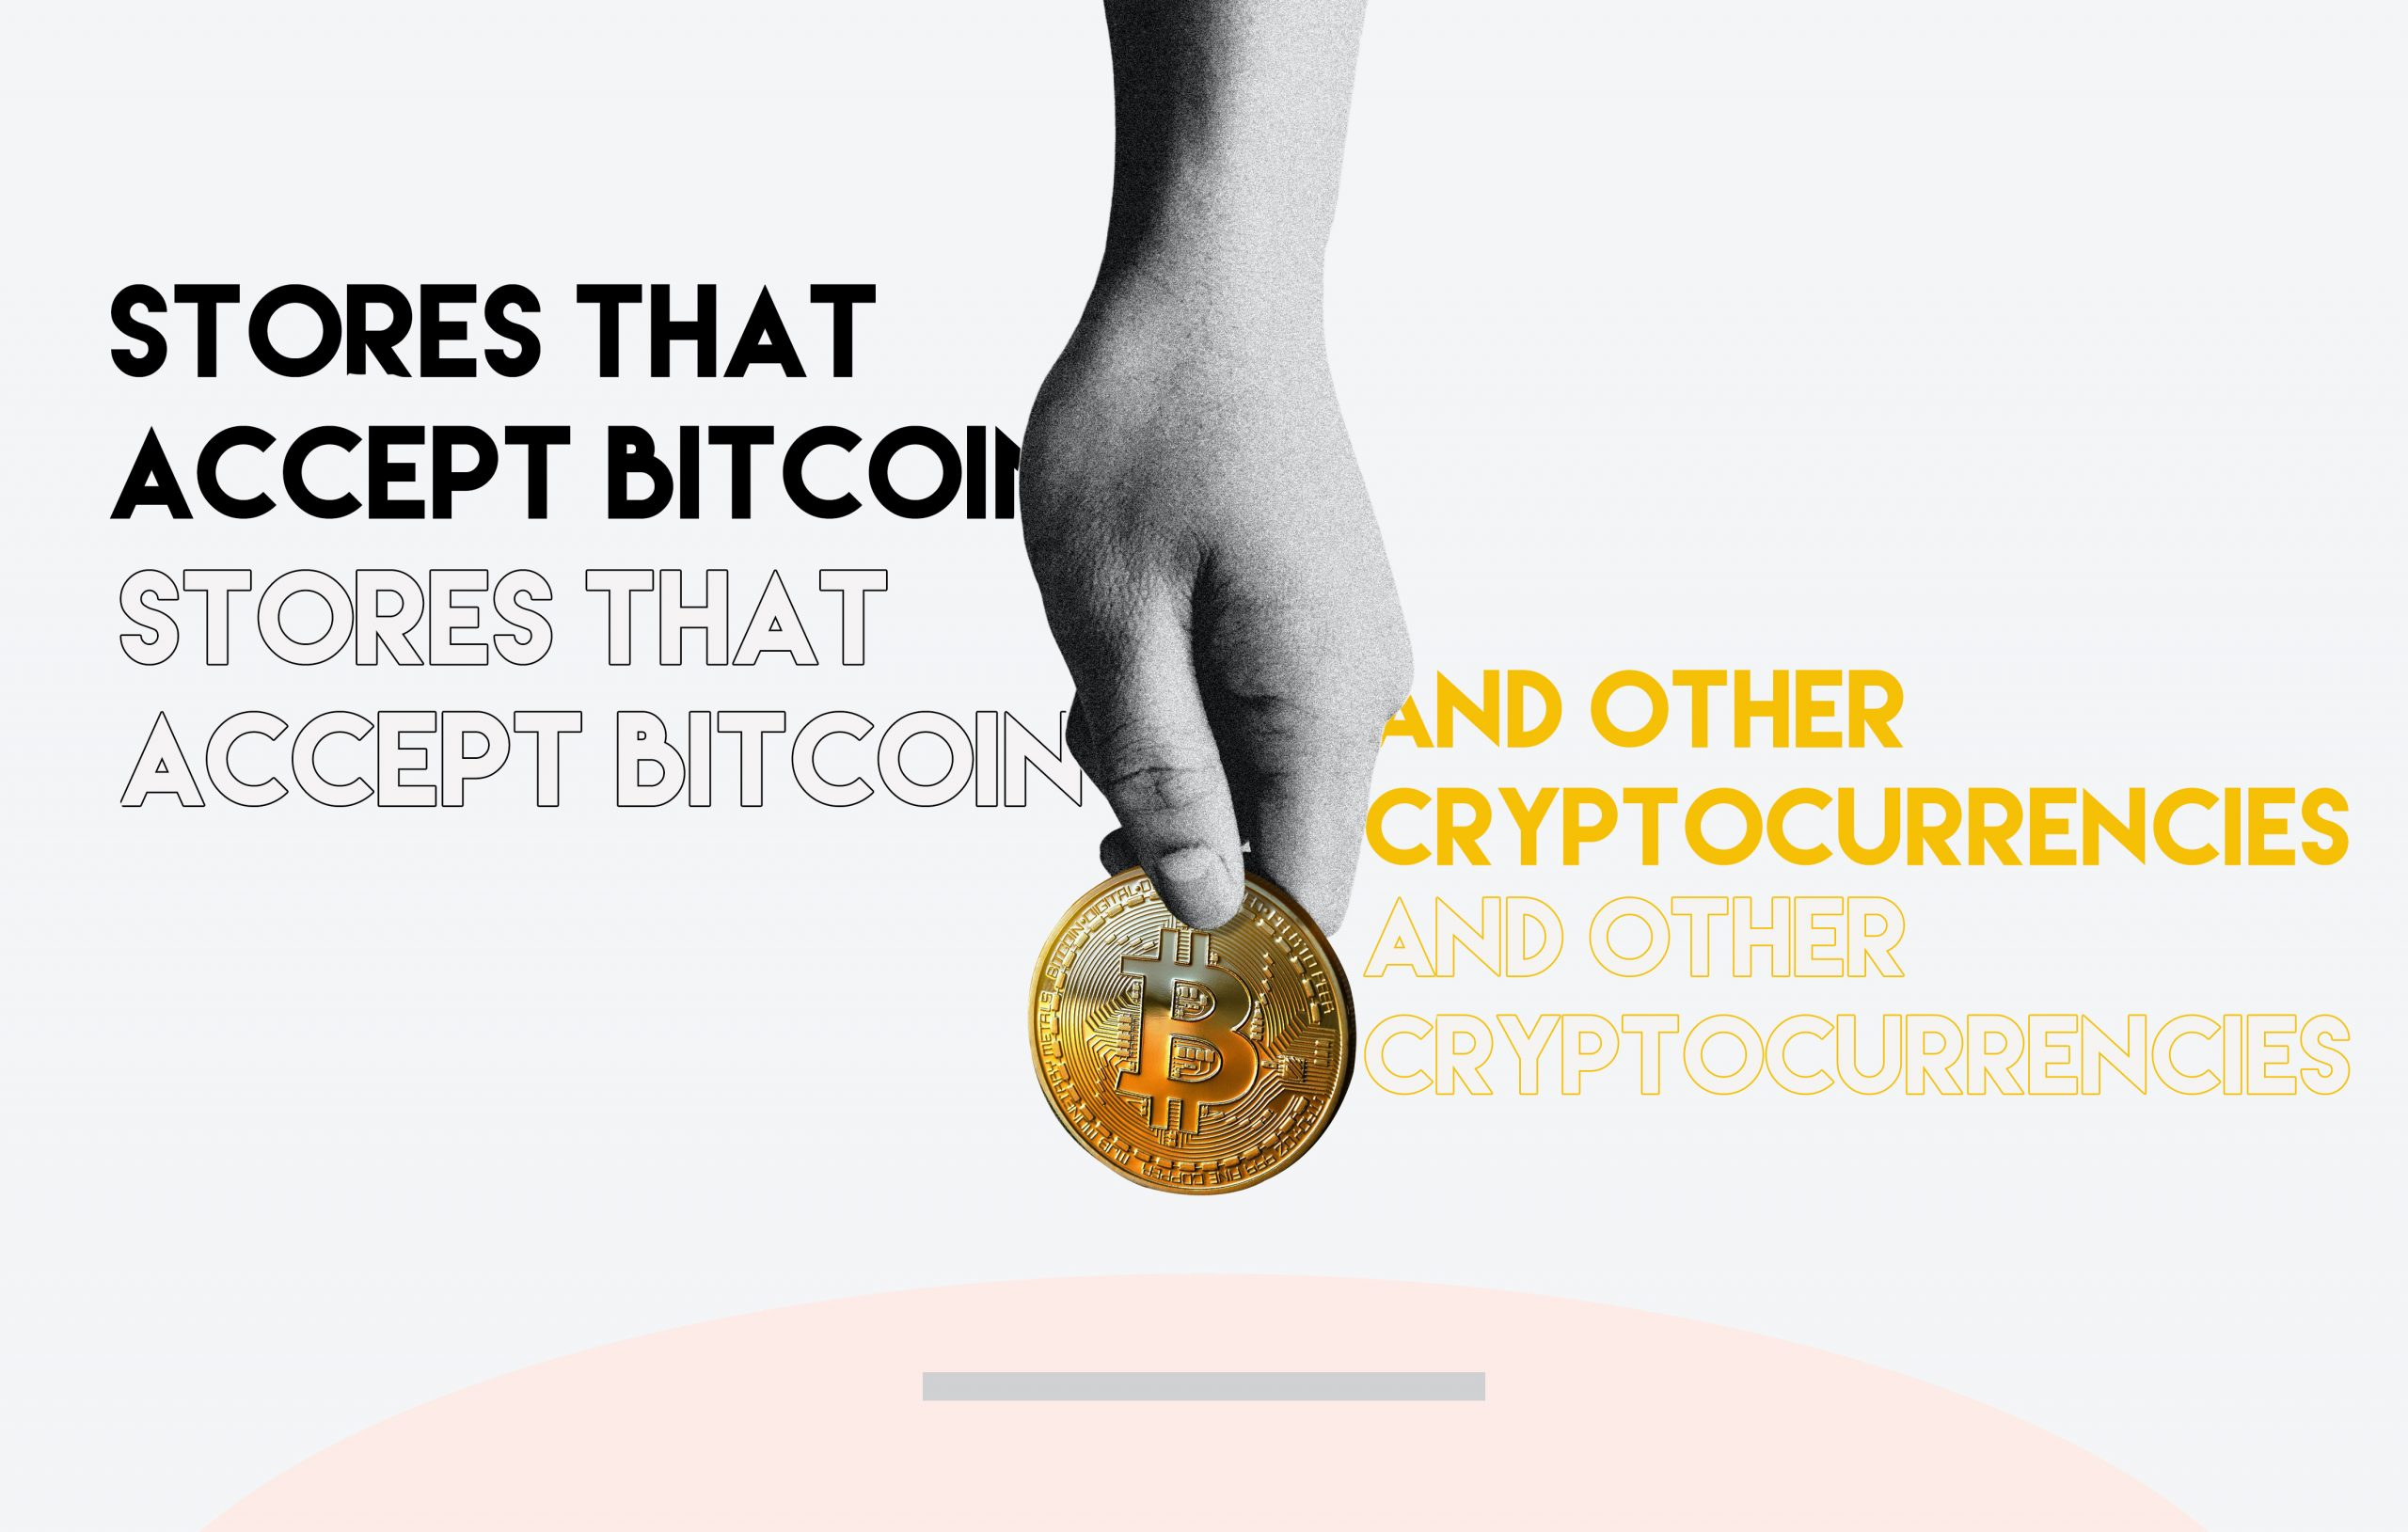 store that accept bitcoin and other crypto